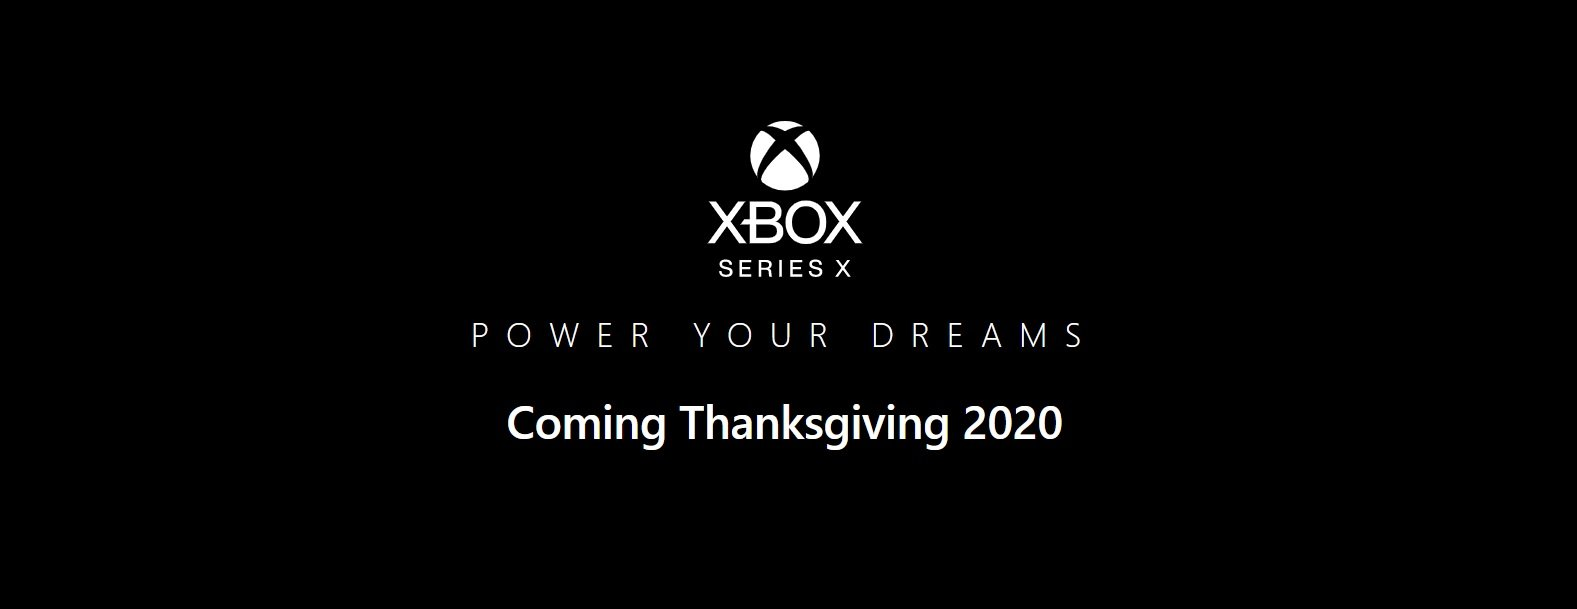 Xbox Series X is launching on Thanksgiving screenshot